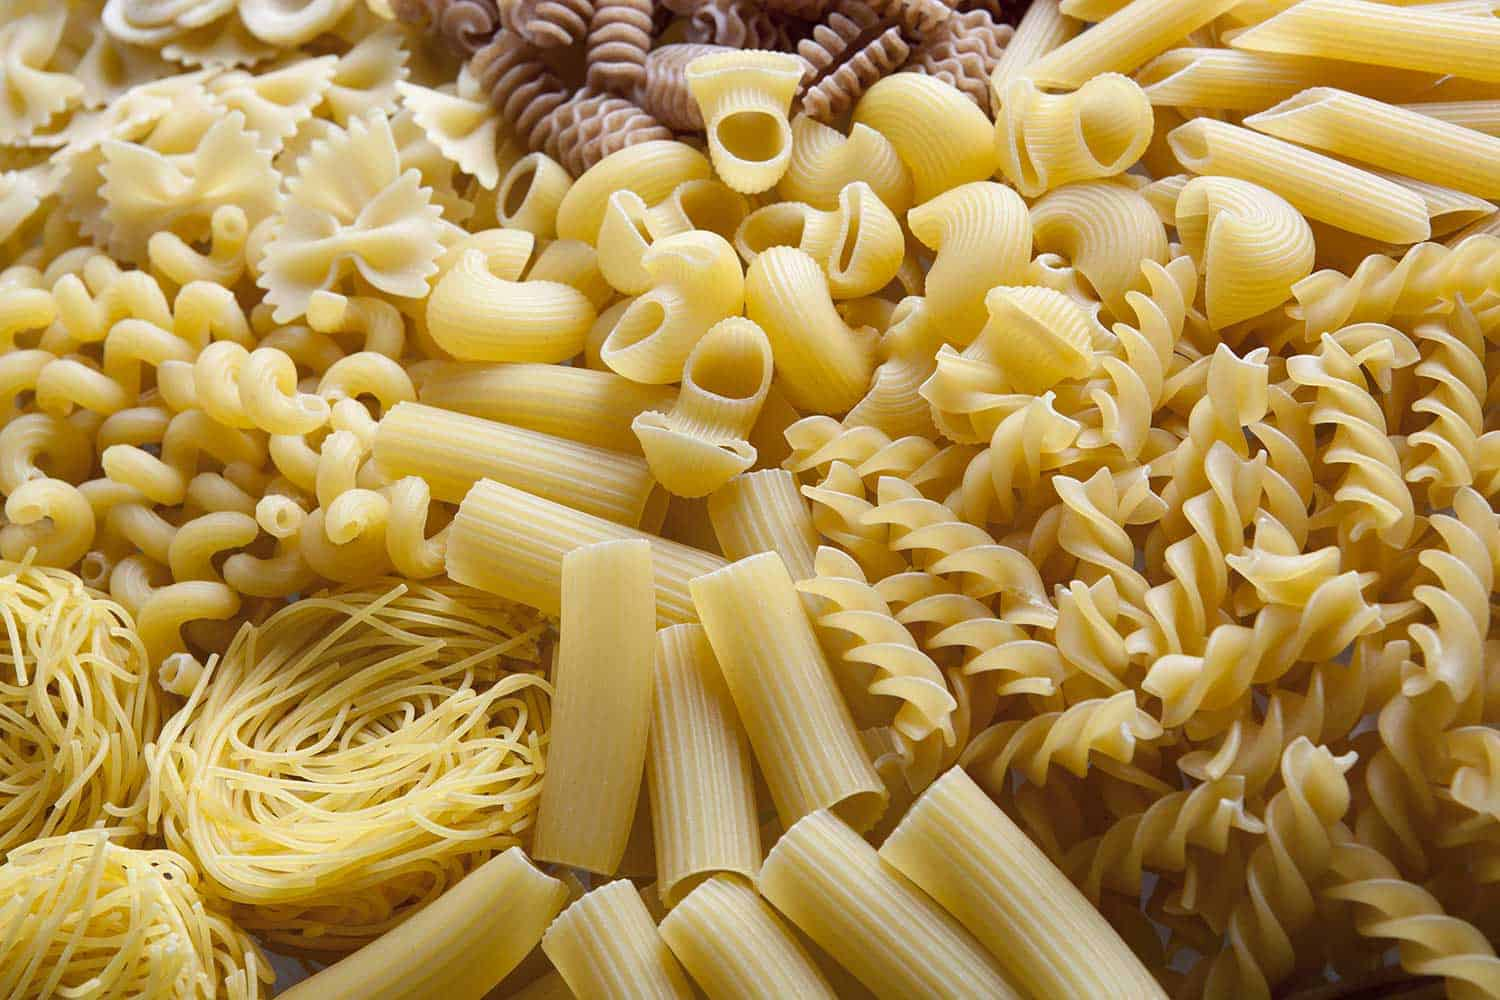 Pasta variation on the table